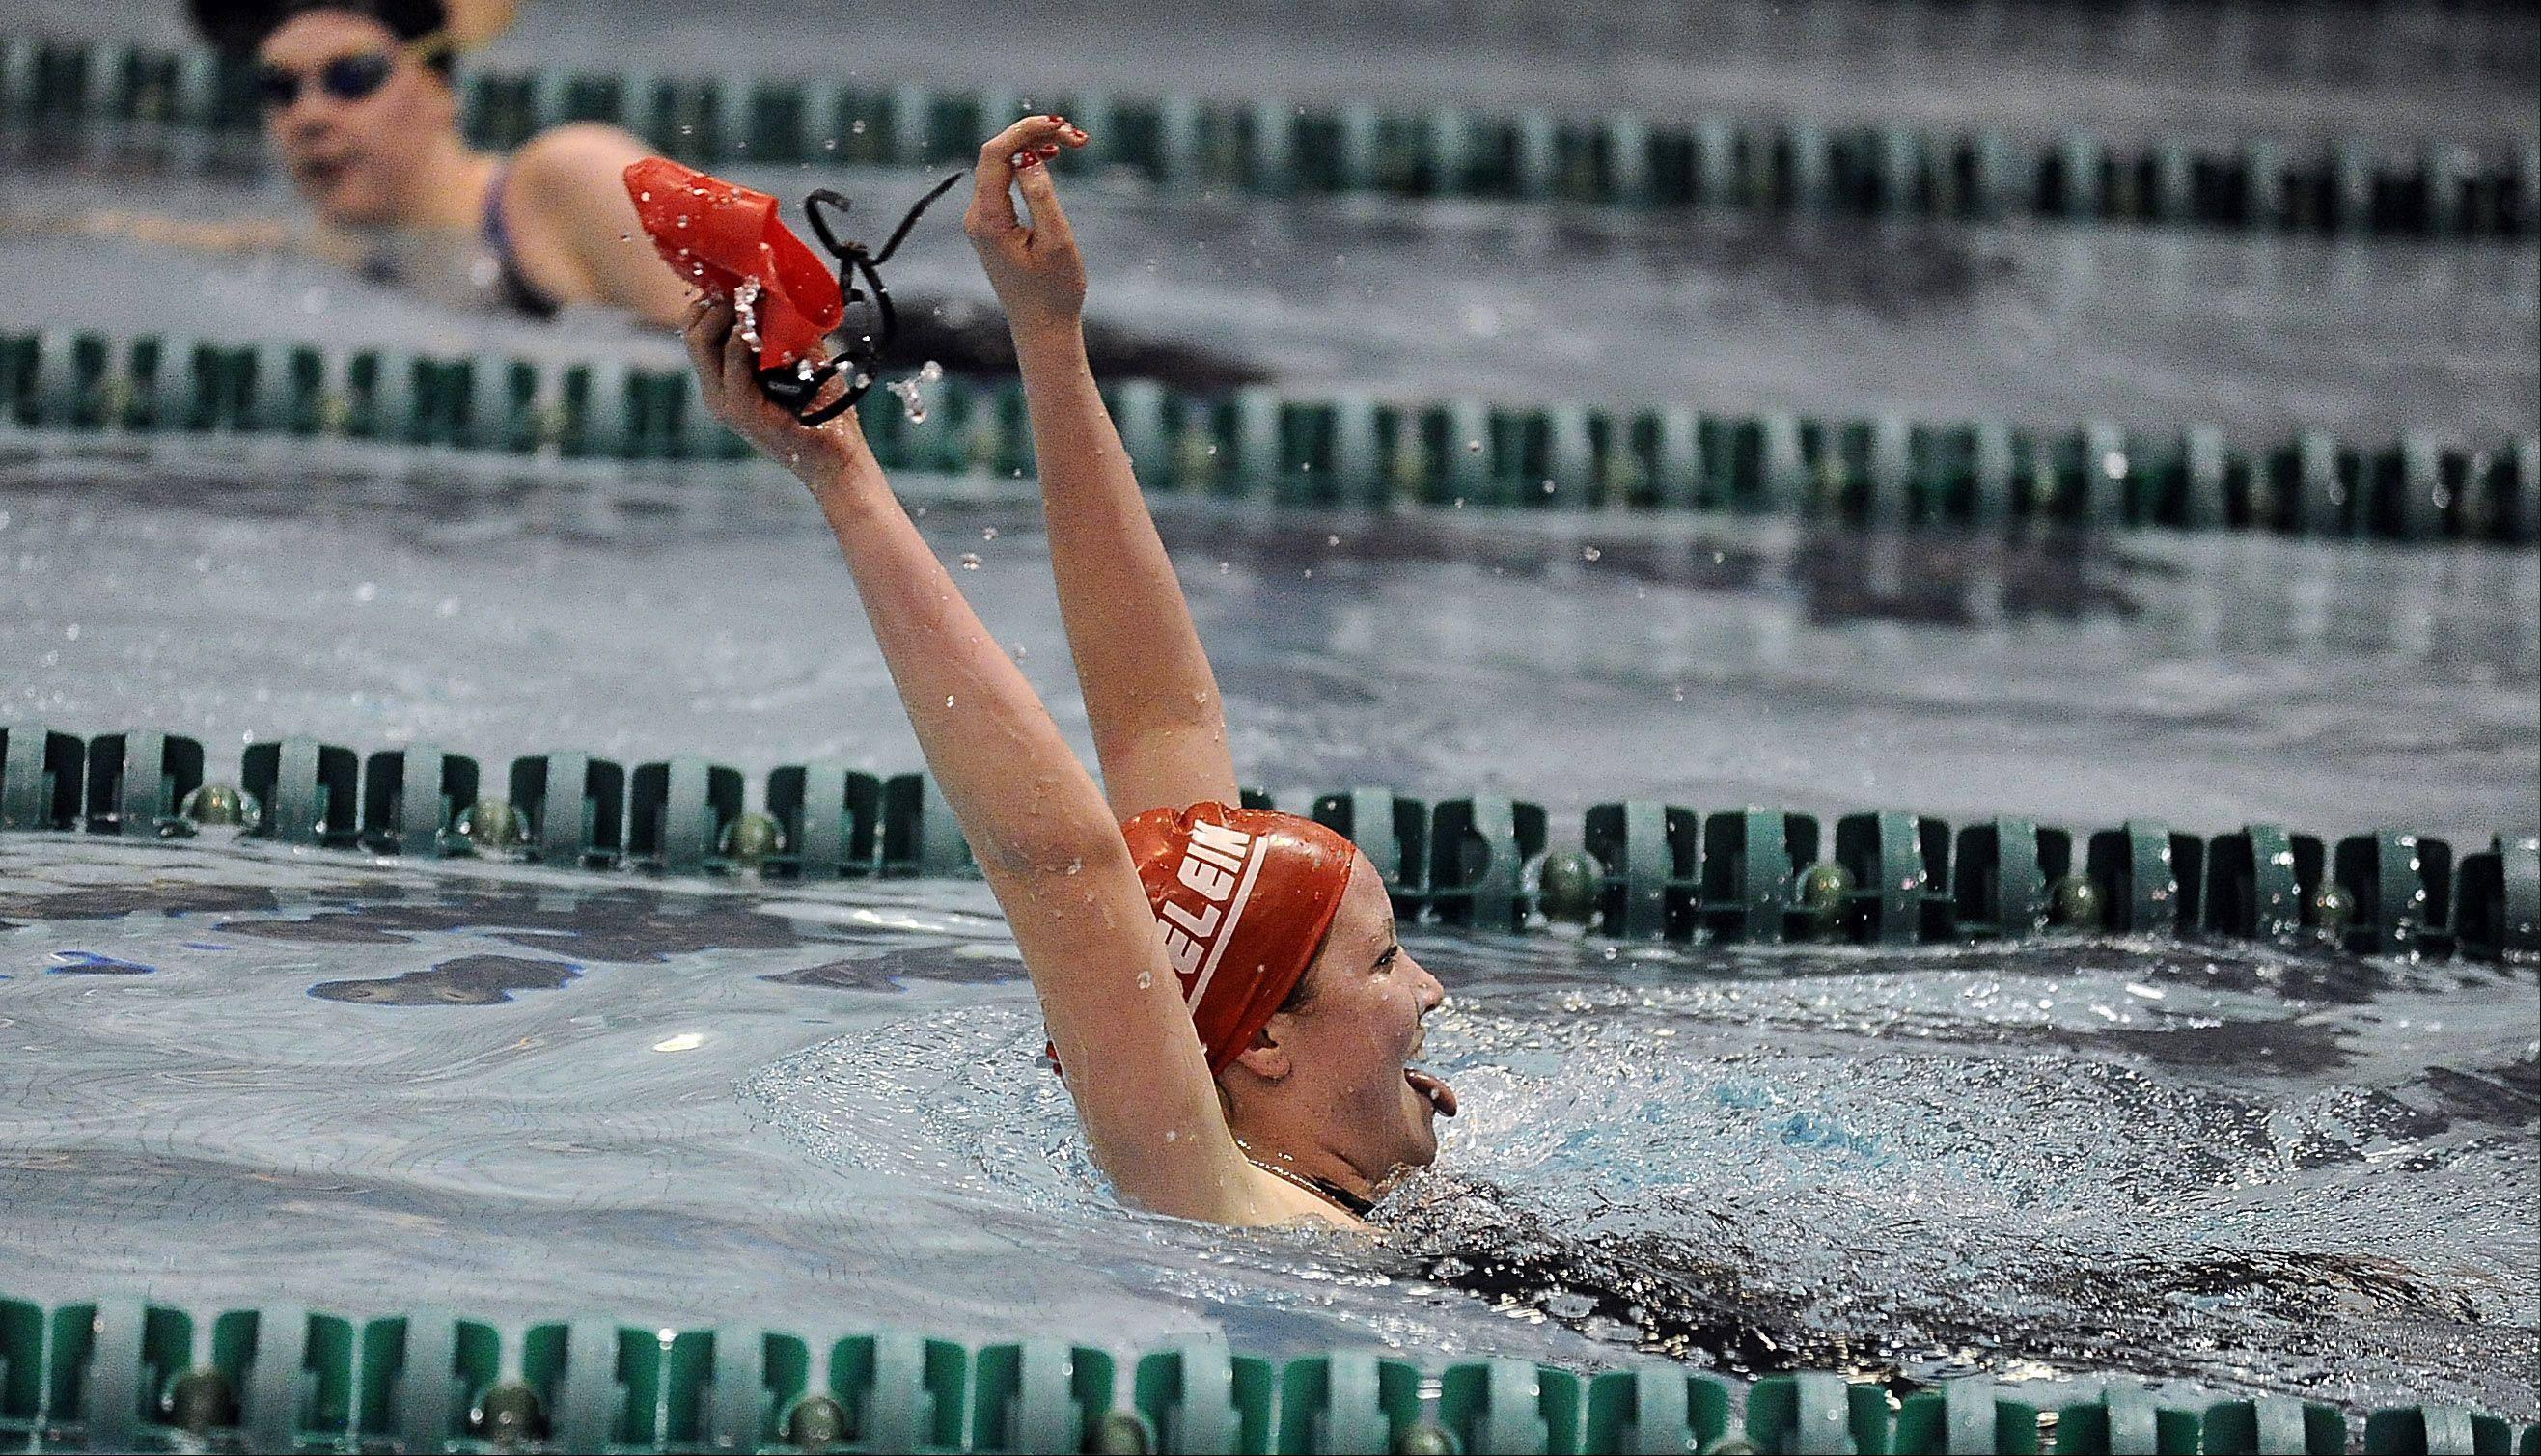 Mundelein's Erin Falconer celebrates her effort in the 200-yardd freestyle girls swimming state prelims at New Trier High School on Friday.